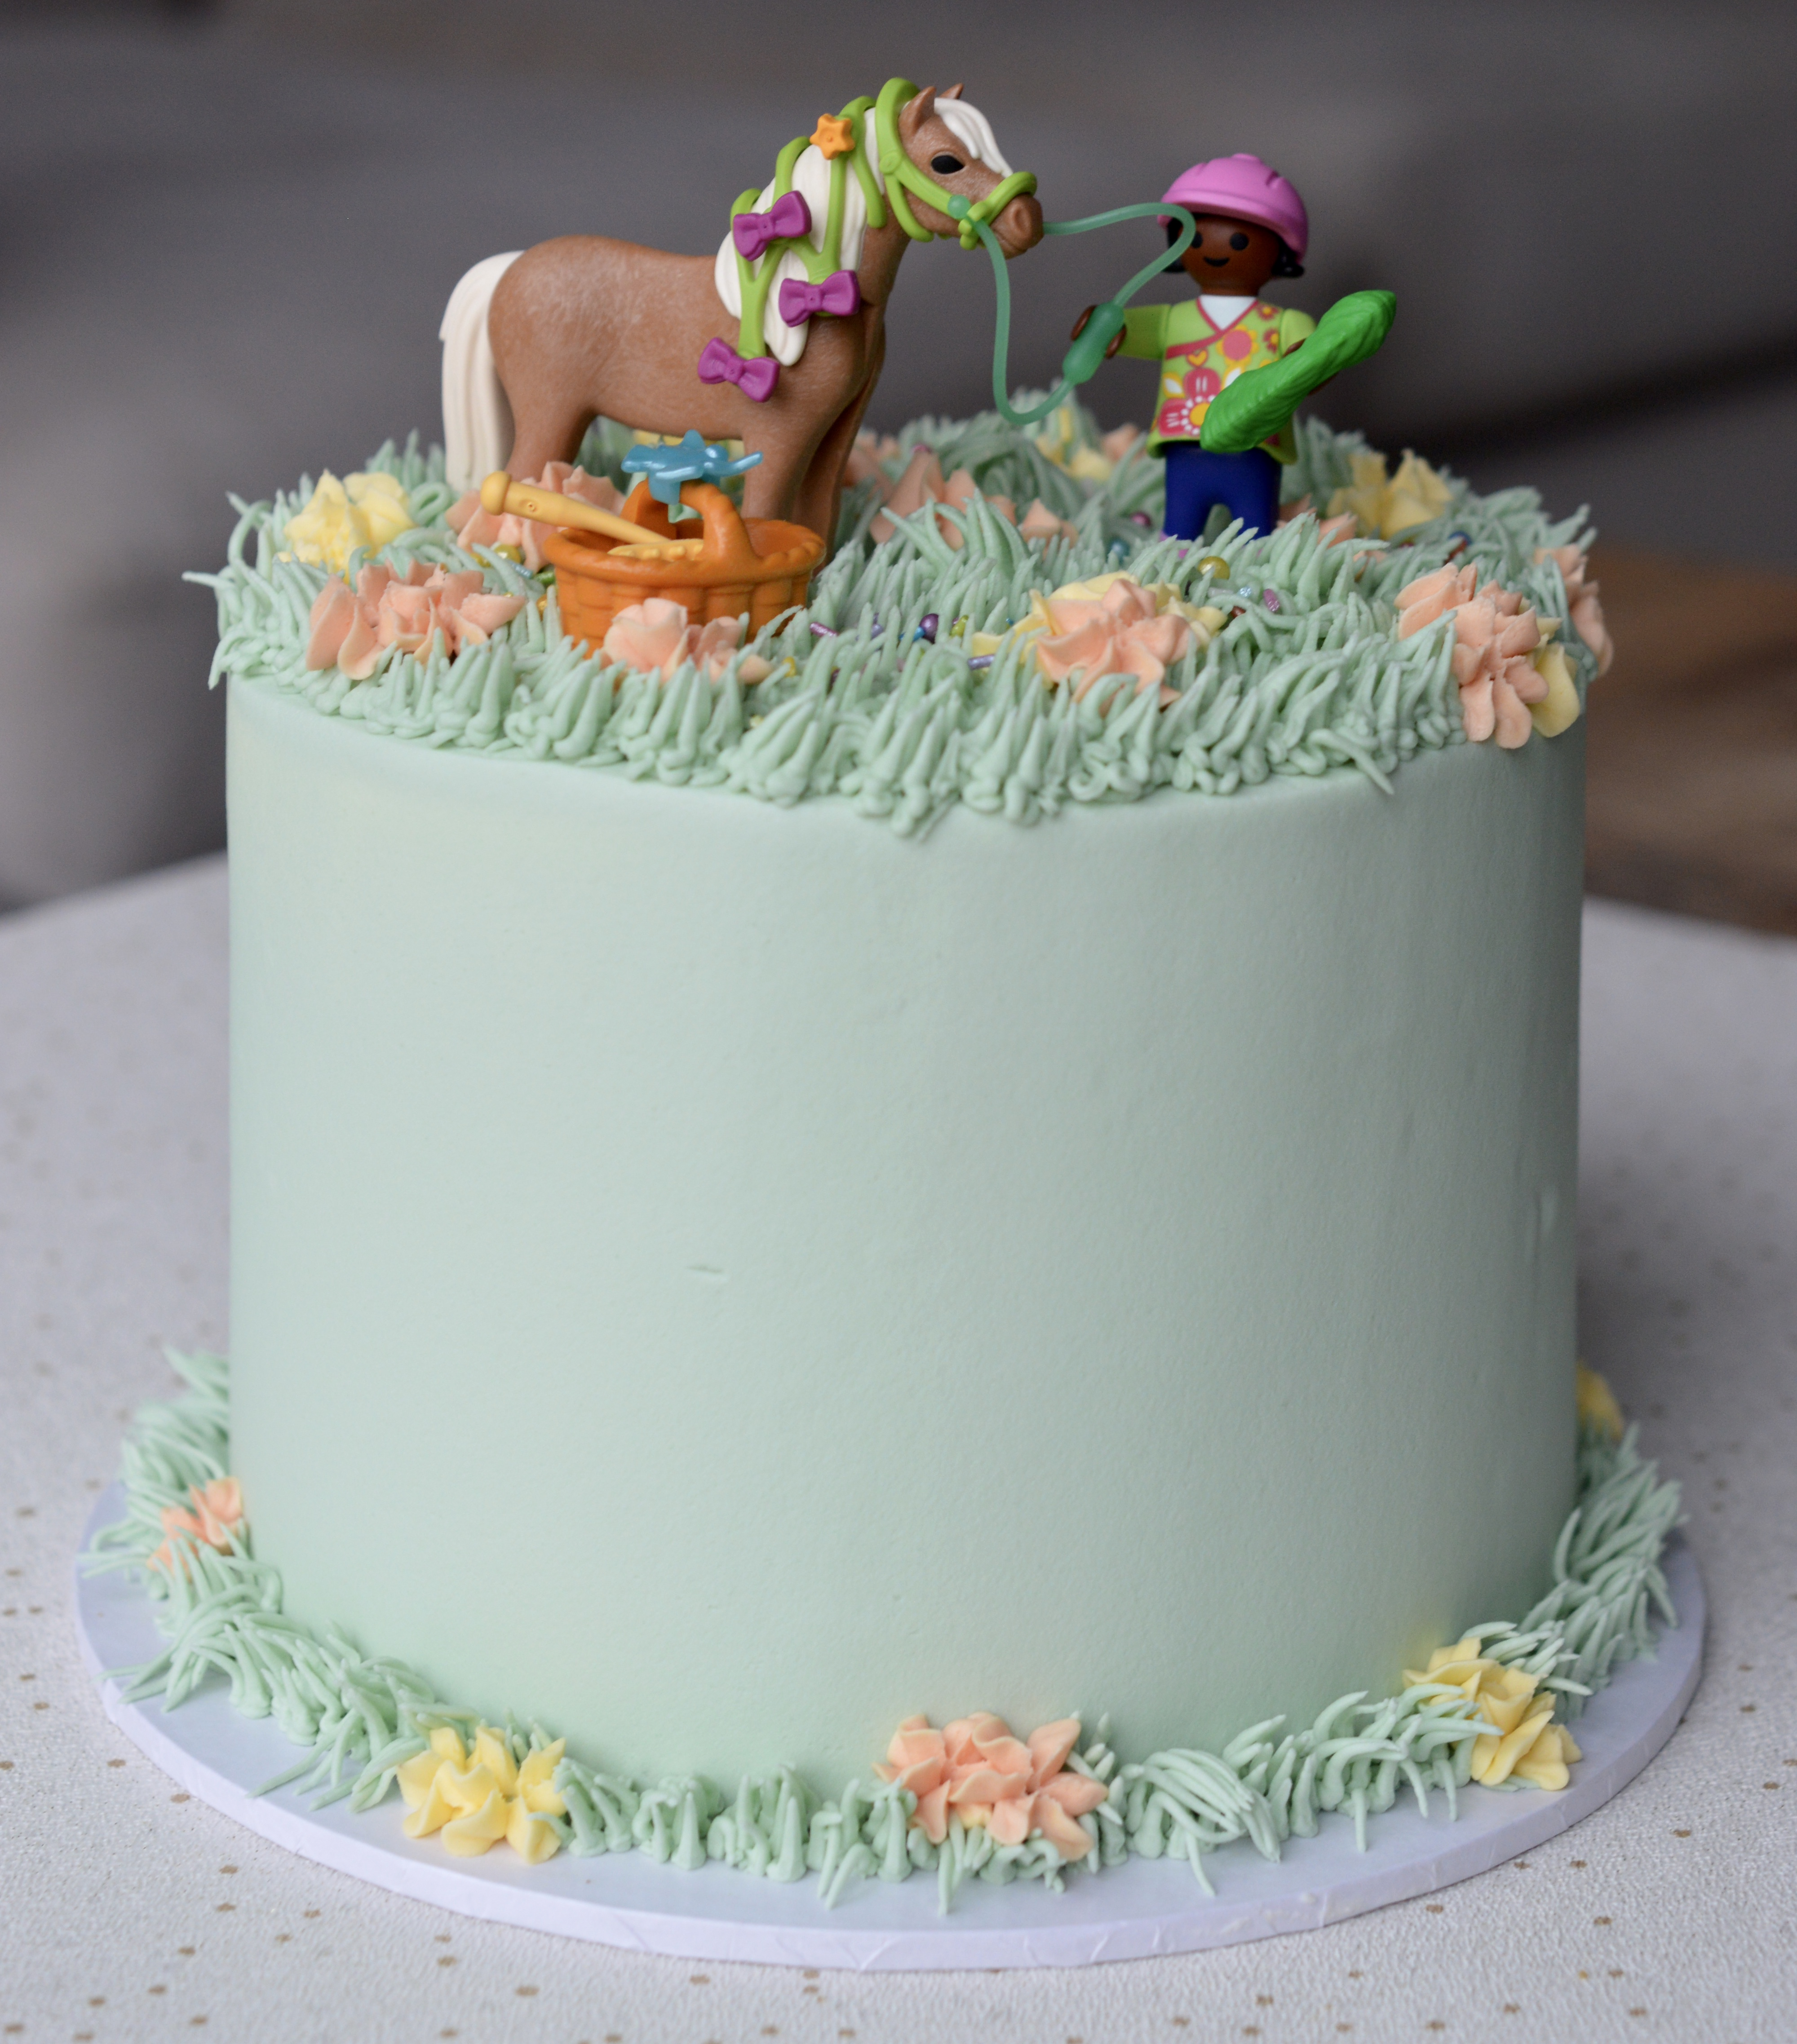 Horse Themed Cake_LHK